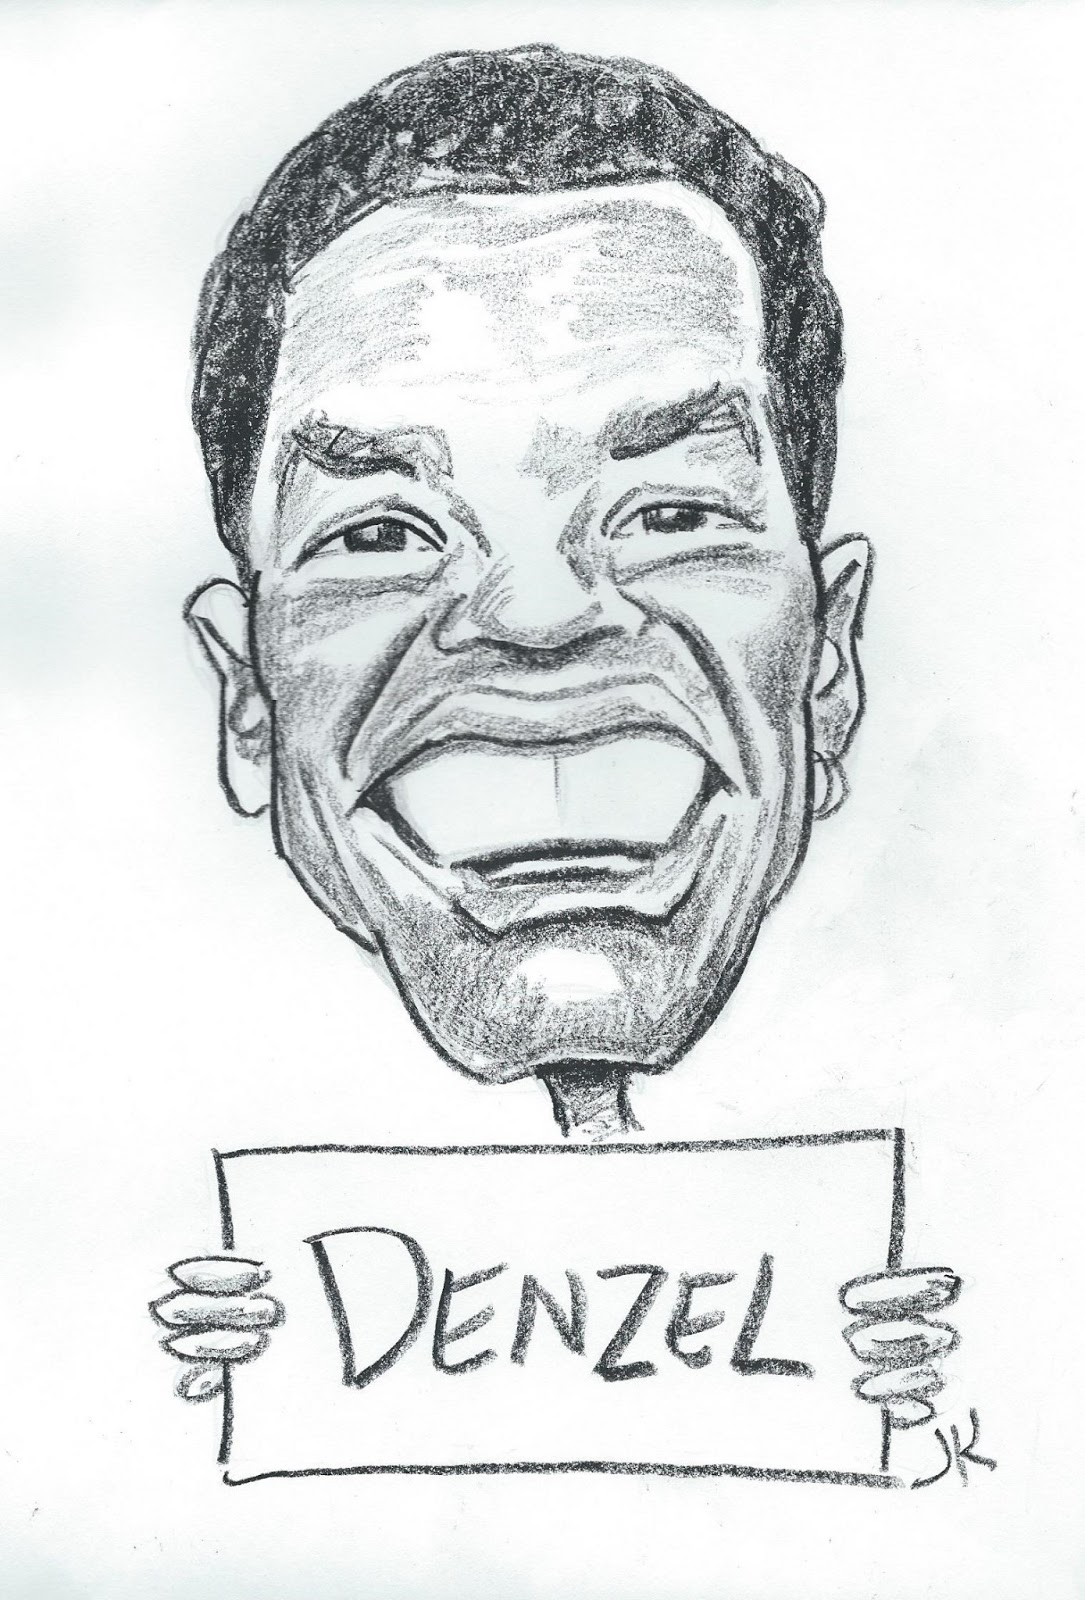 Not Your Usual Caricature Artist: The King of Broadway